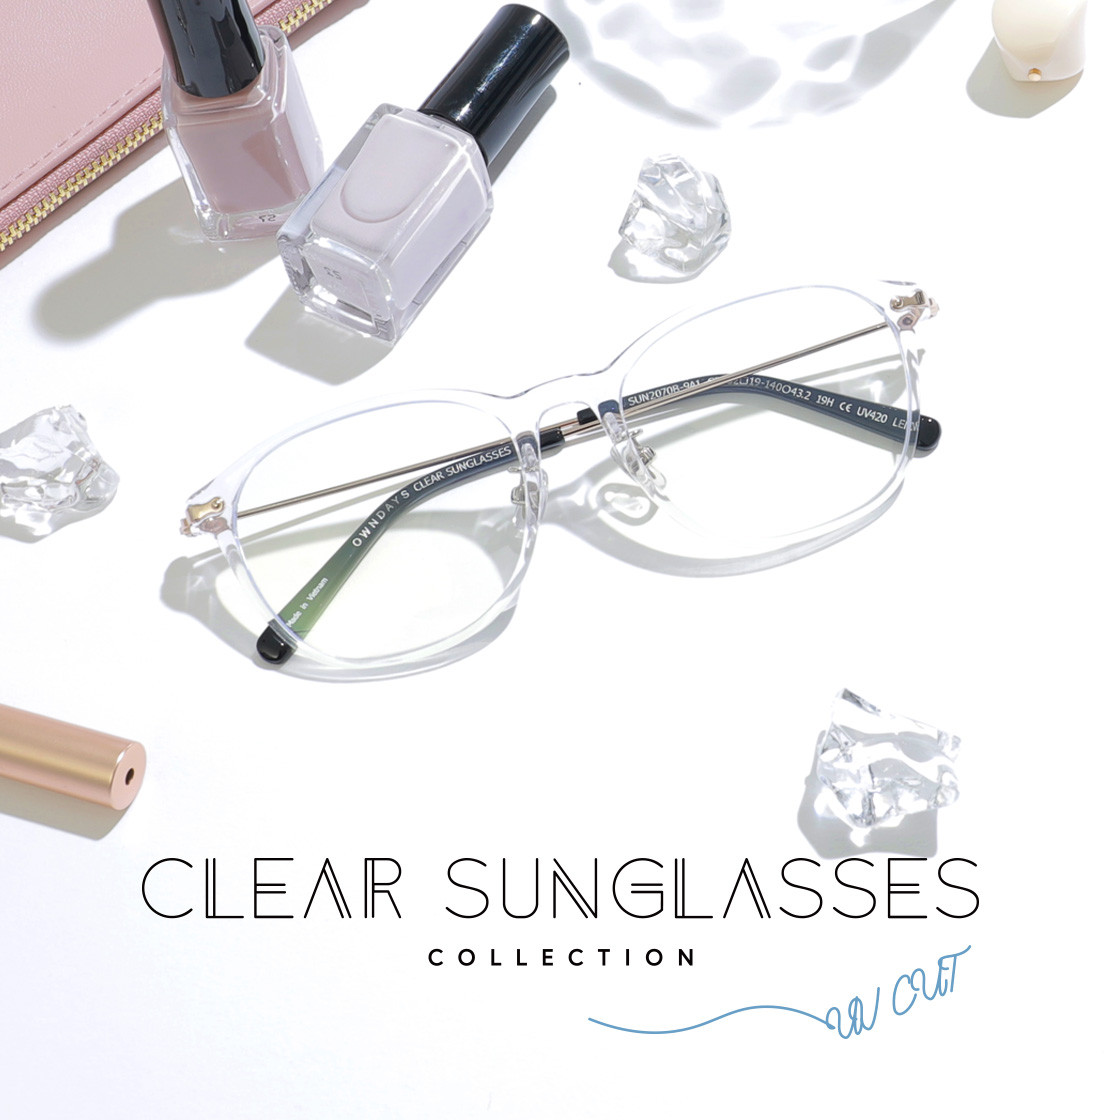 CLEAR SUNGLASSES COLLECTION